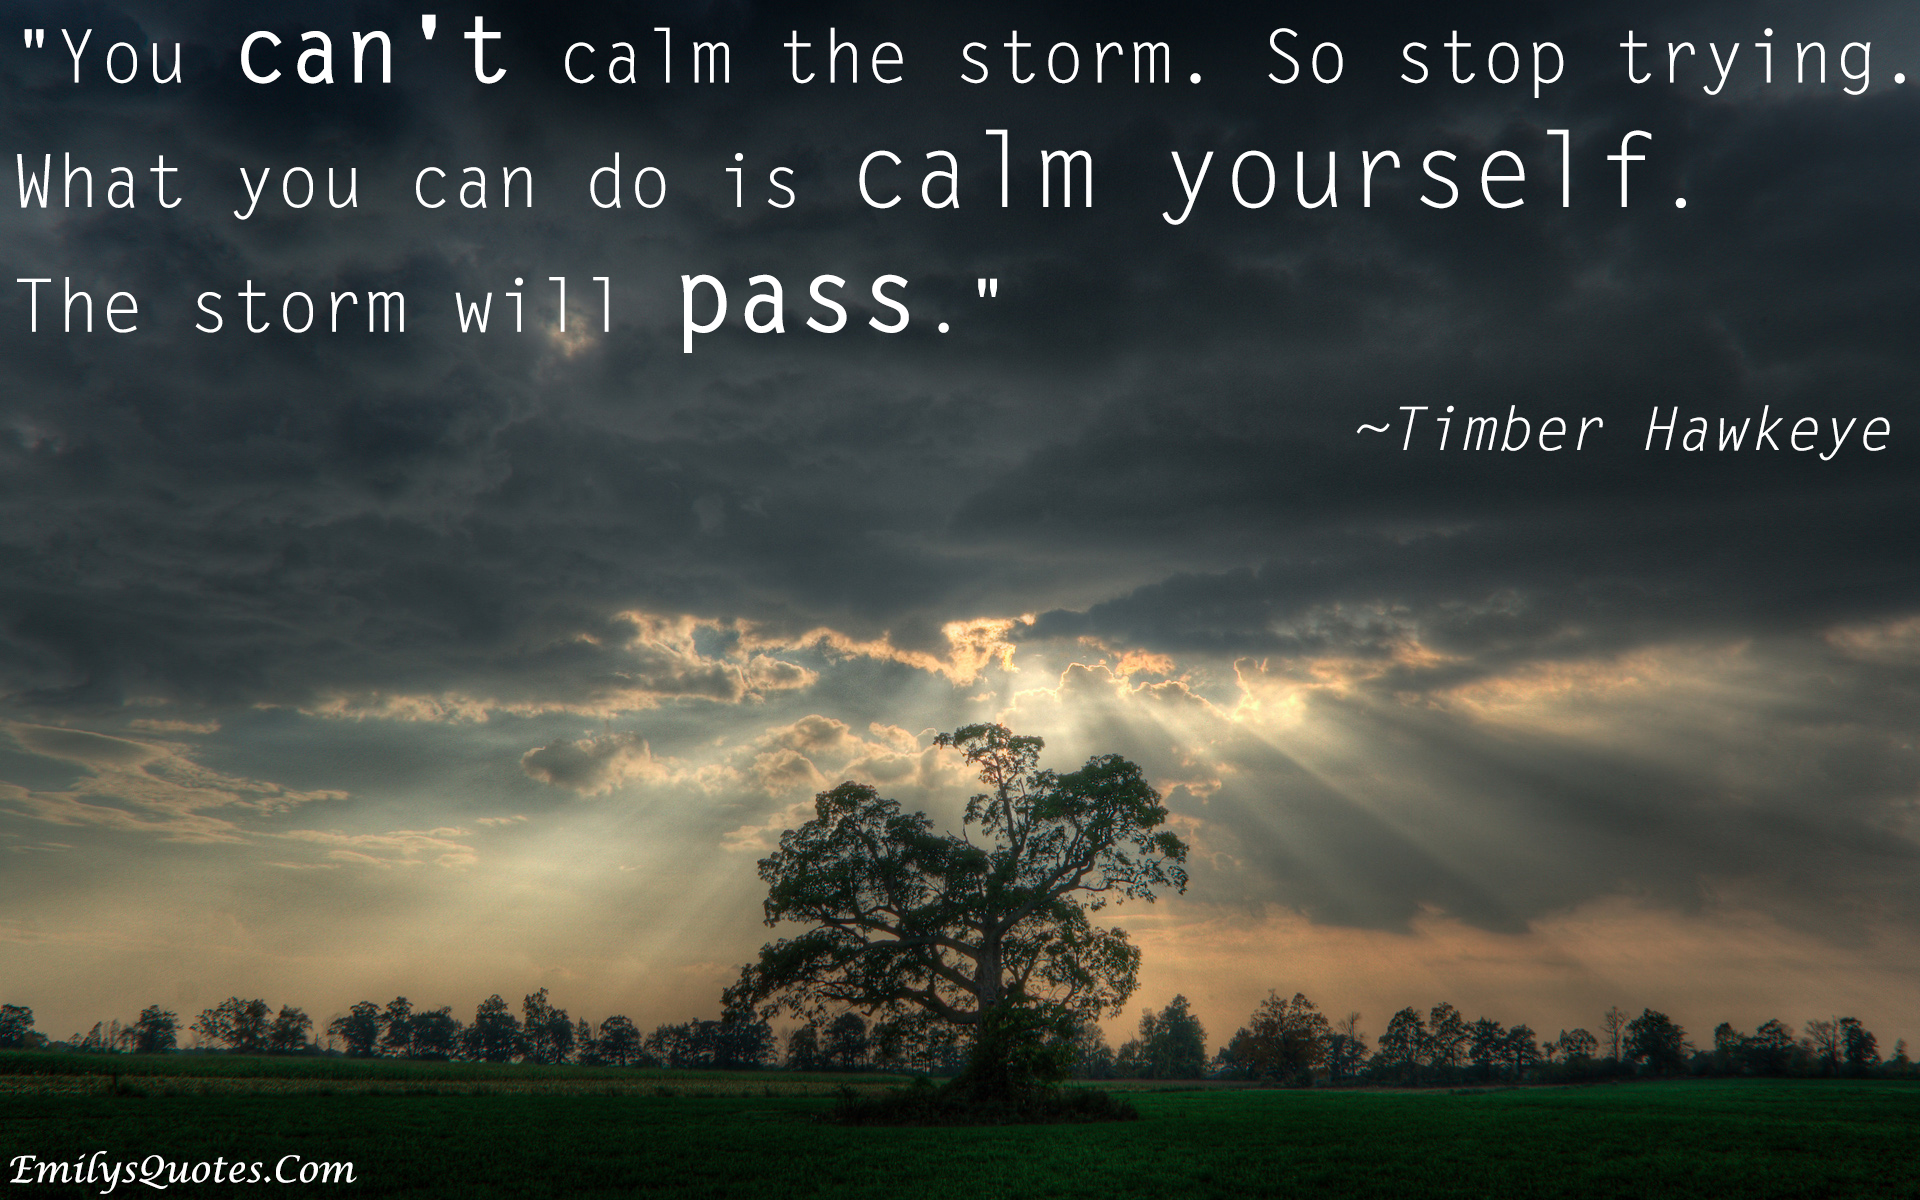 EmilysQuotes.Com - calm, storm, experience, patience, Timber Hawkeye, choice